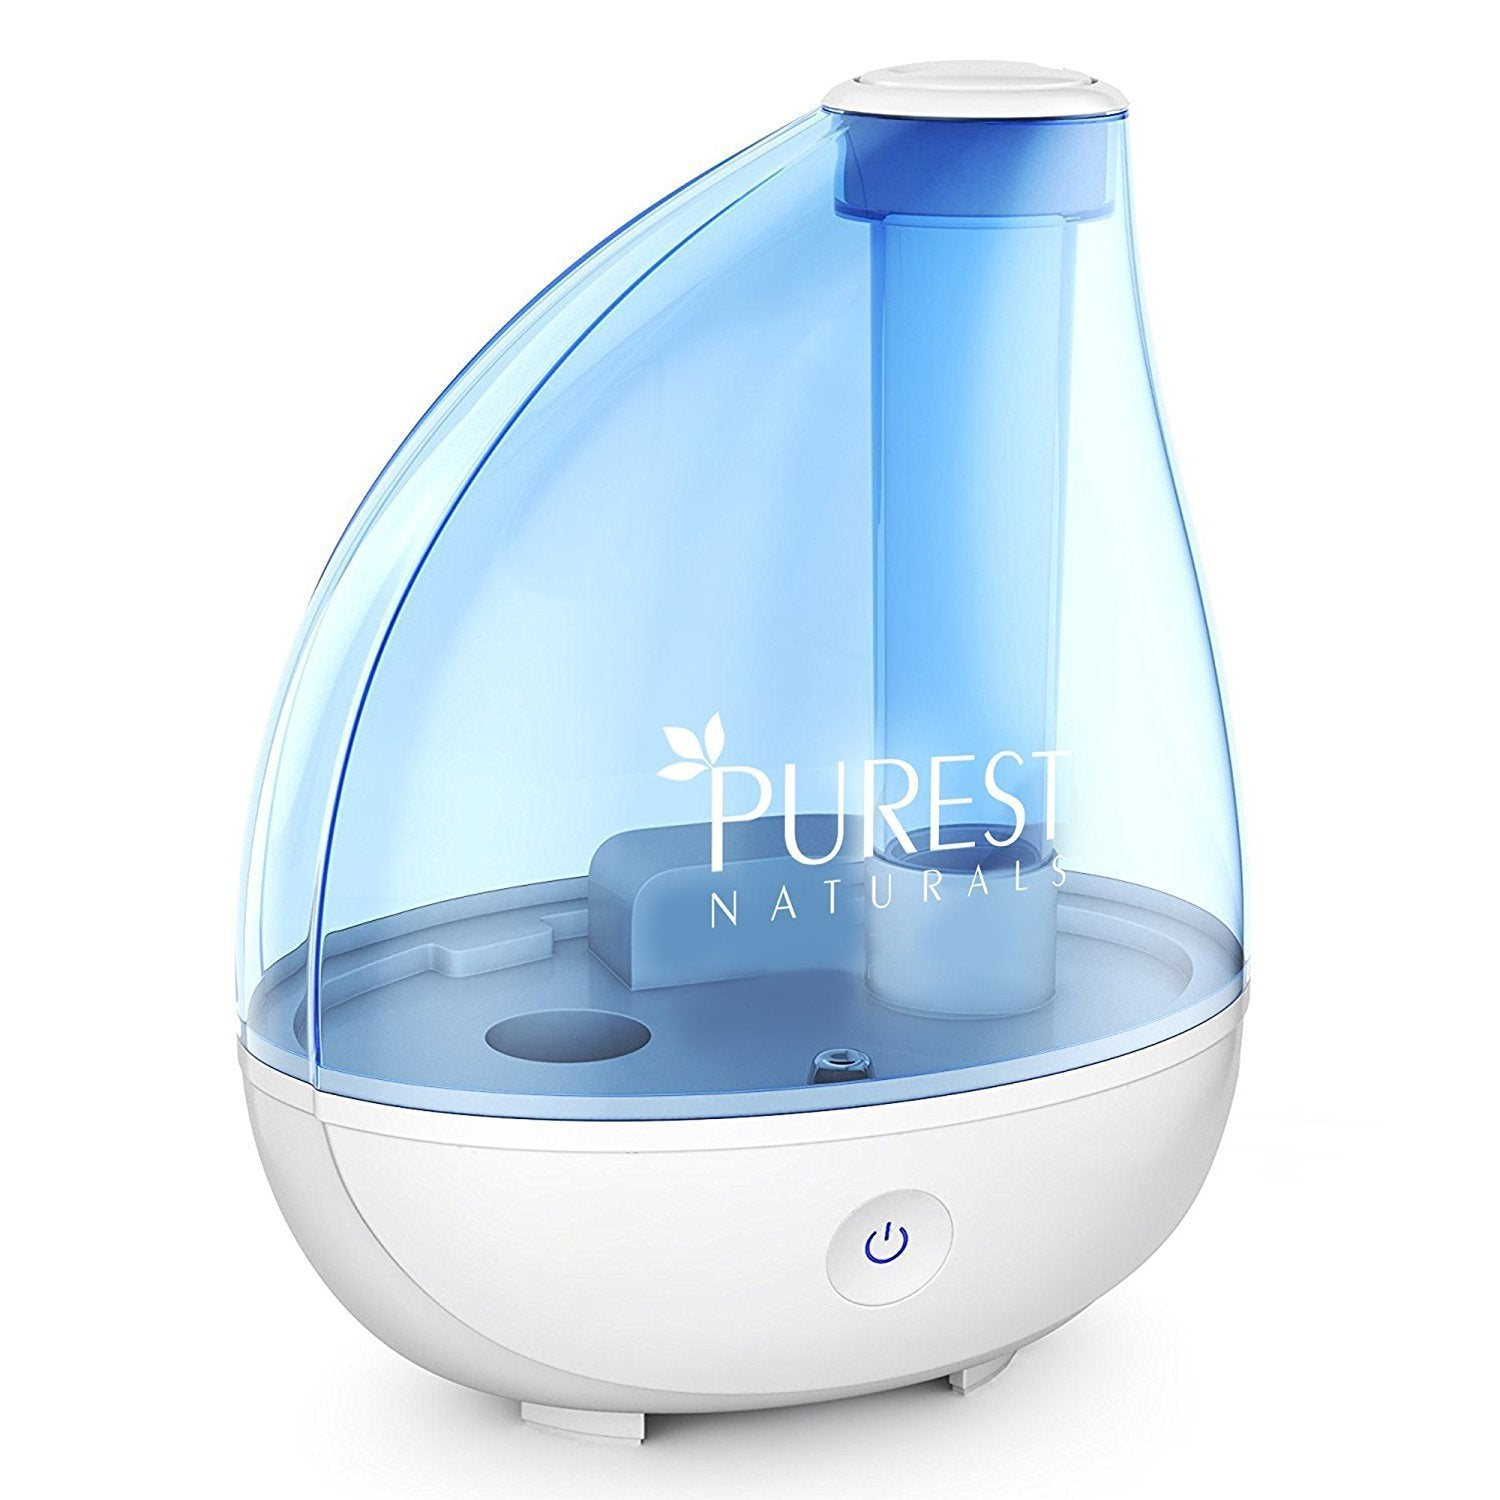 Purest Naturals Ultrasonic Cool Mist Humidifier Portable Humidifiers Air Purifier with Whisper-quiet Operation, Automatic Shut-Off, and Night Light Function 1.7L Large Capacity - Runs For 16+ Hrs